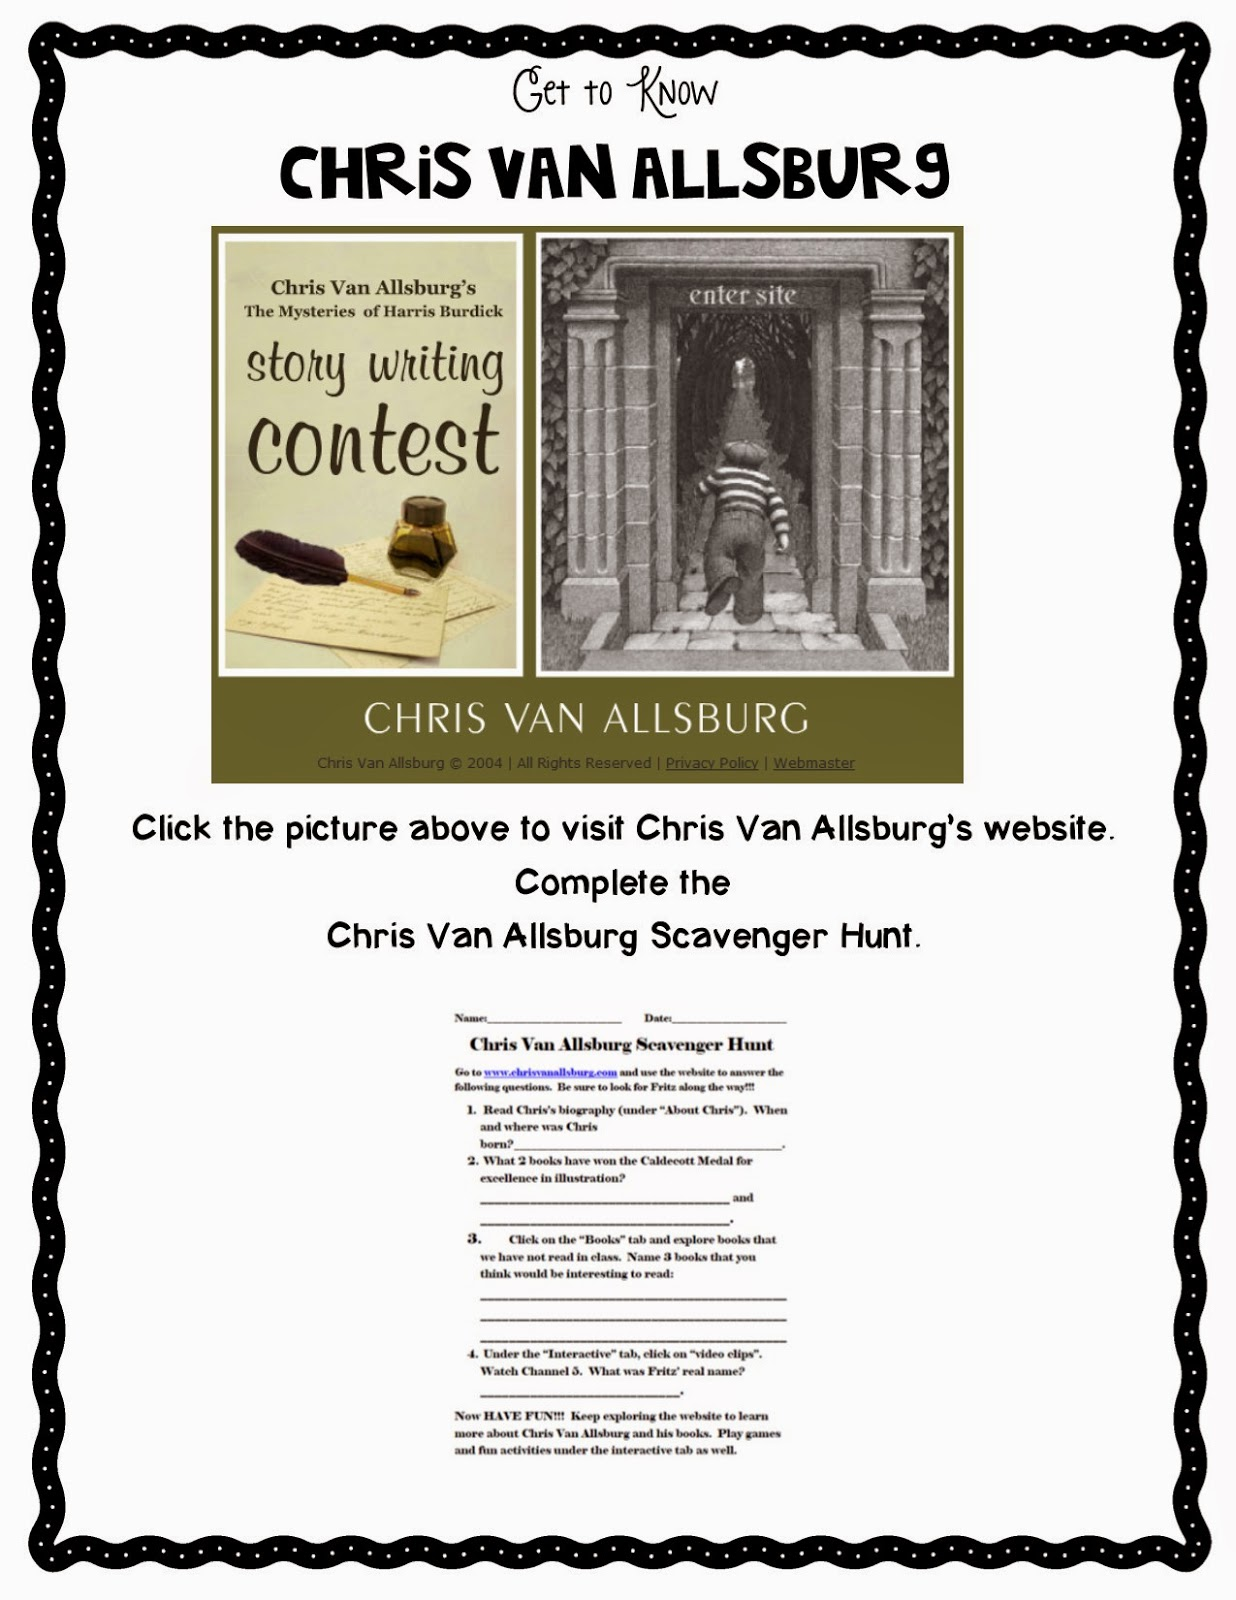 http://www.chrisvanallsburg.com/flash.html